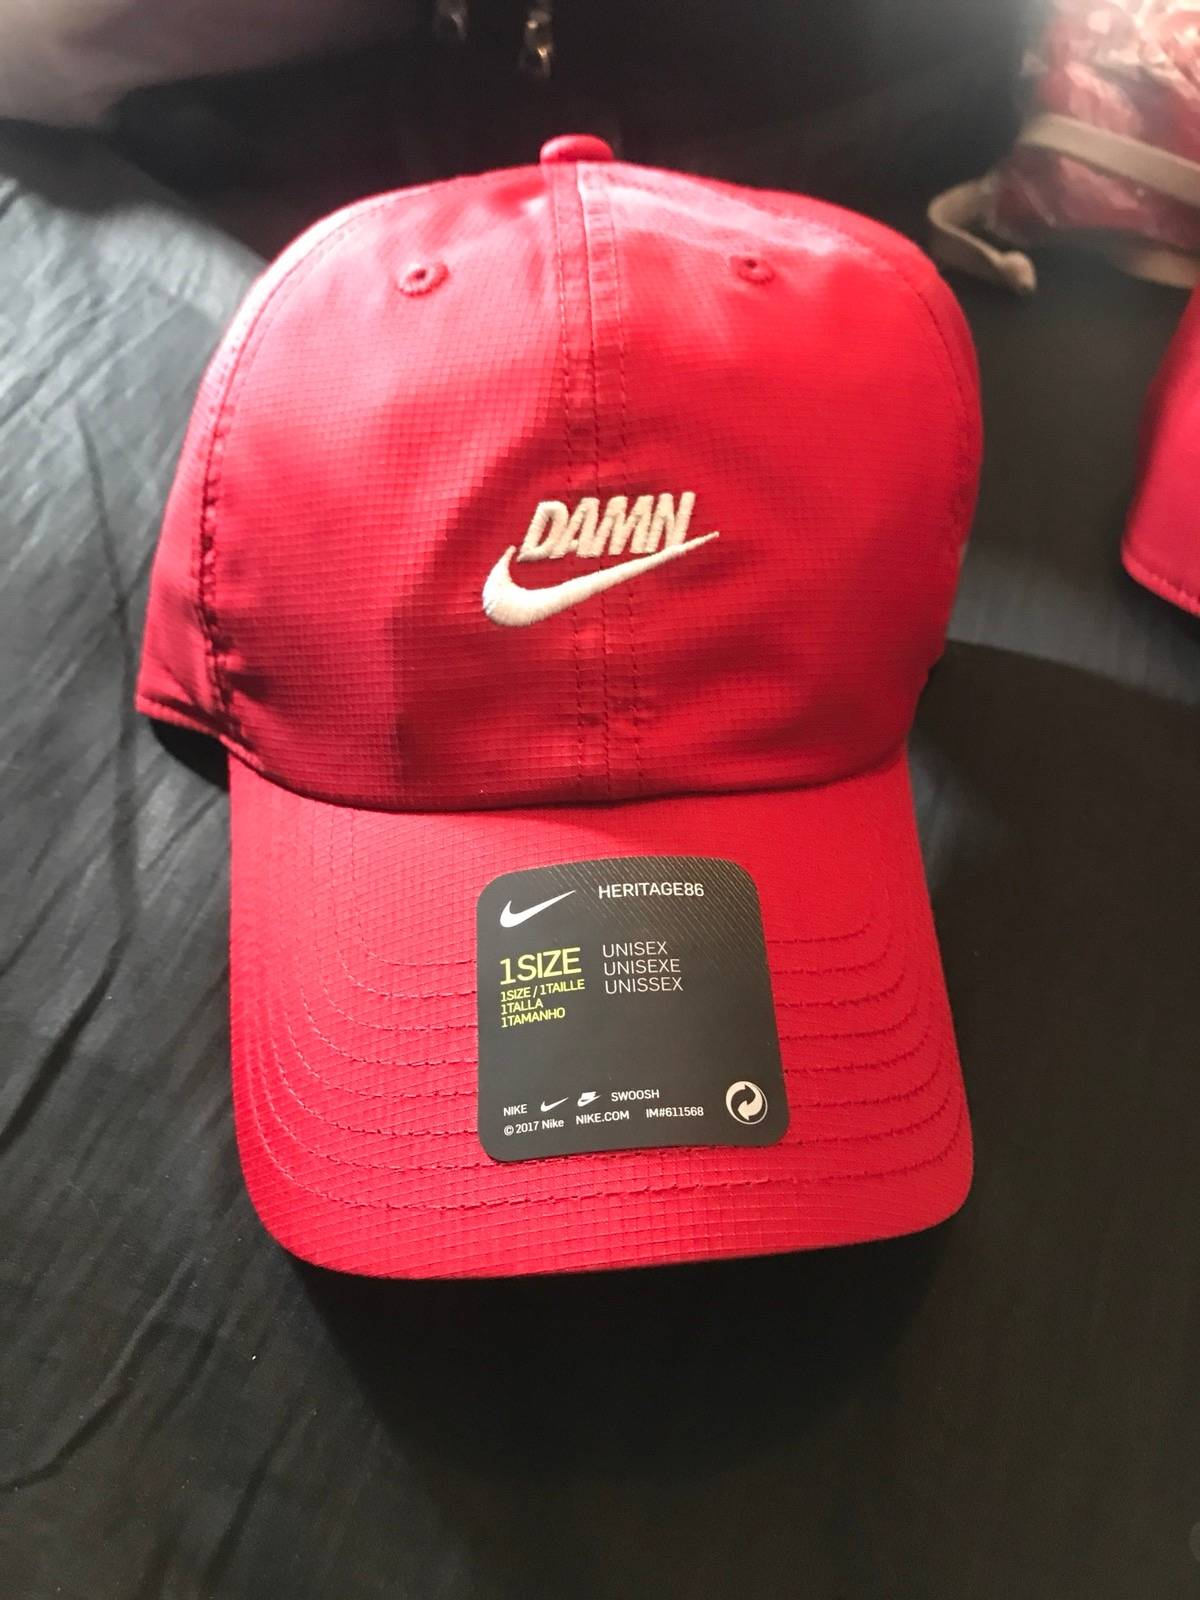 Nike Damn Nike Hat Size one size - Hats for Sale - Grailed 4ba9b2991e5